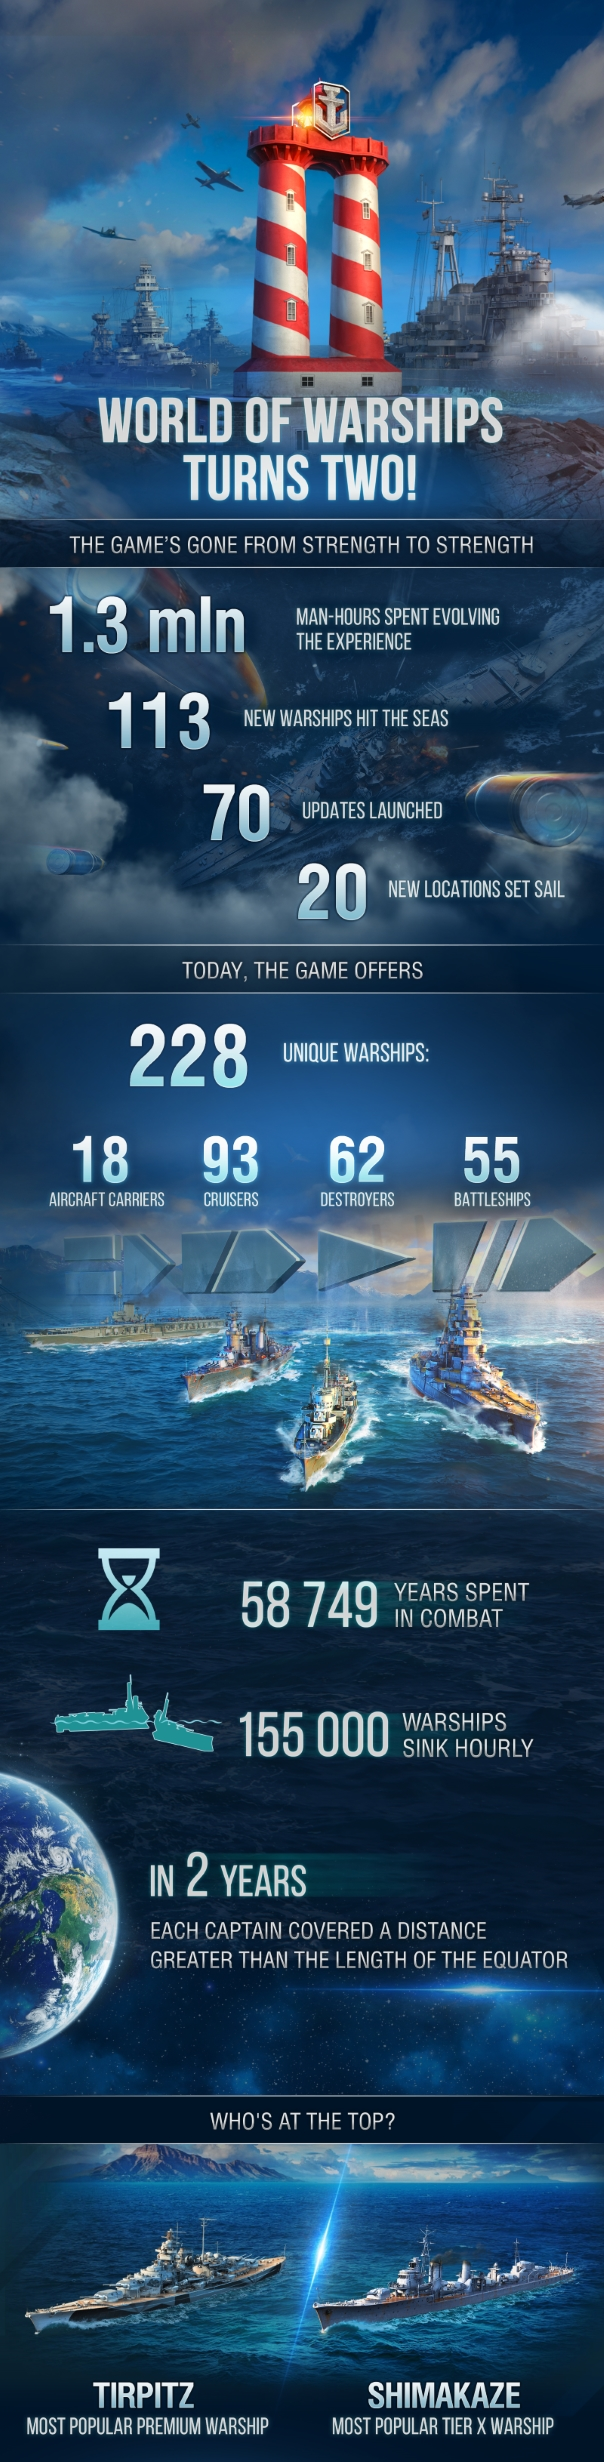 World of Warships Second Anniversary Infographic